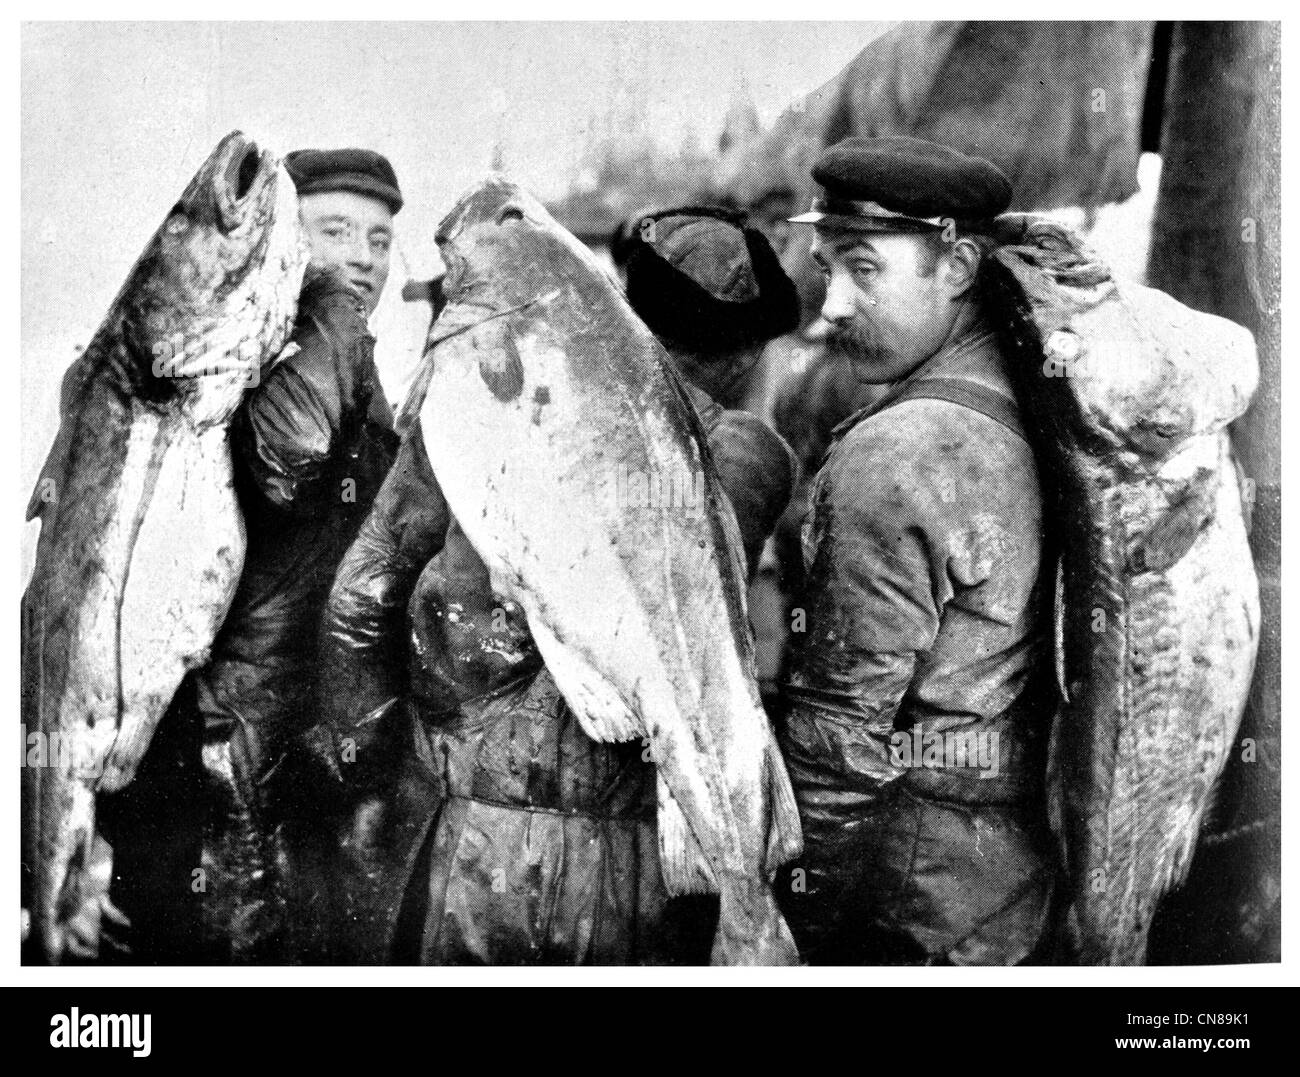 First published 1915 Cod fish fishermen catch haul - Stock Image